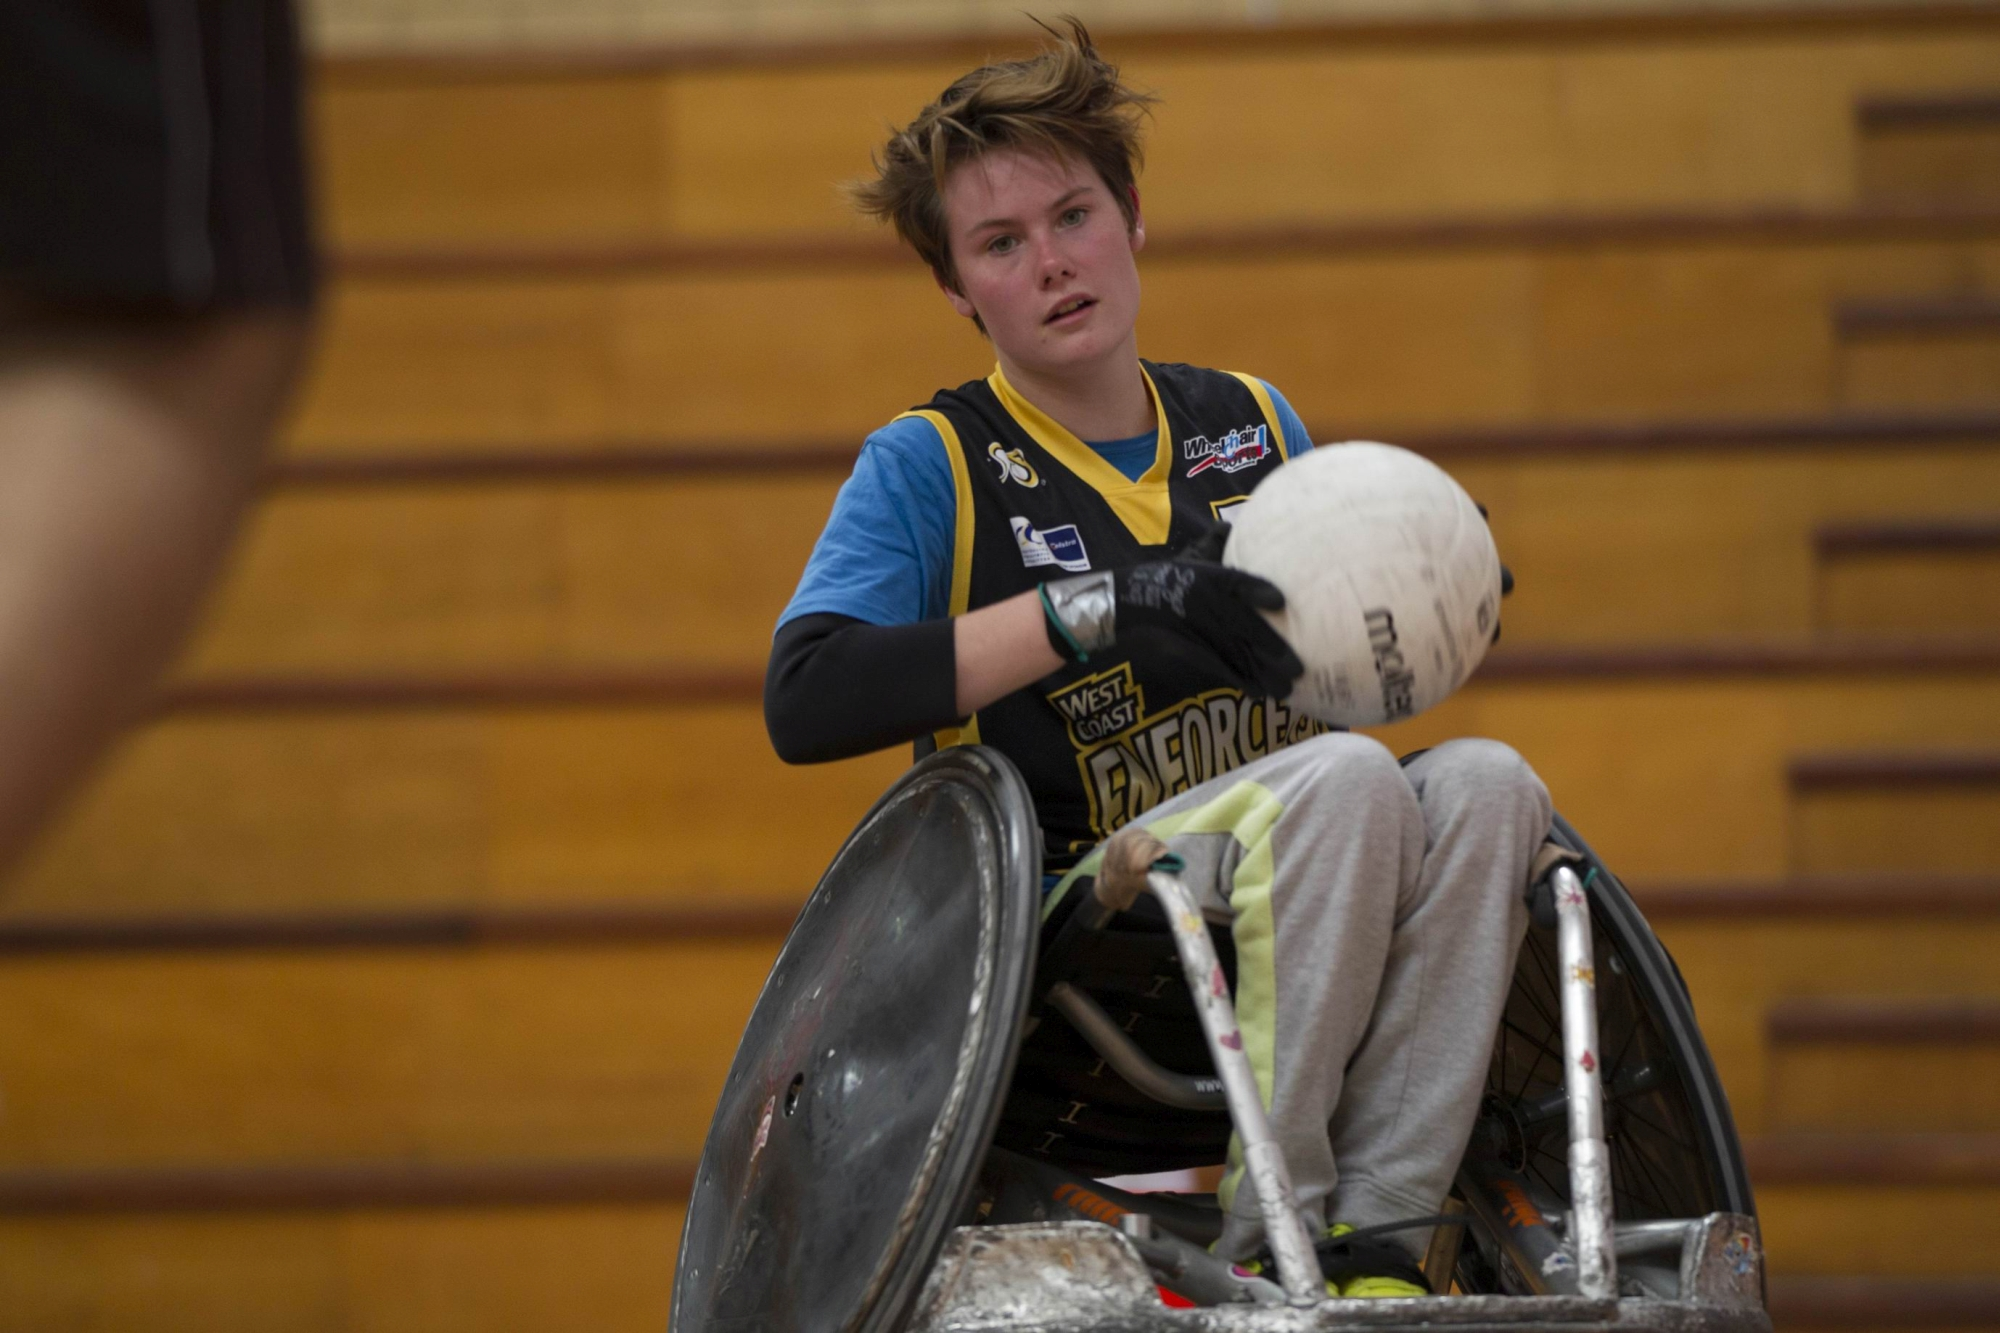 Top: Robyn Lambird-Walton plays for the State wheelchair rugby team West Coast Enforcers. Above: Lambird-Walton in action.